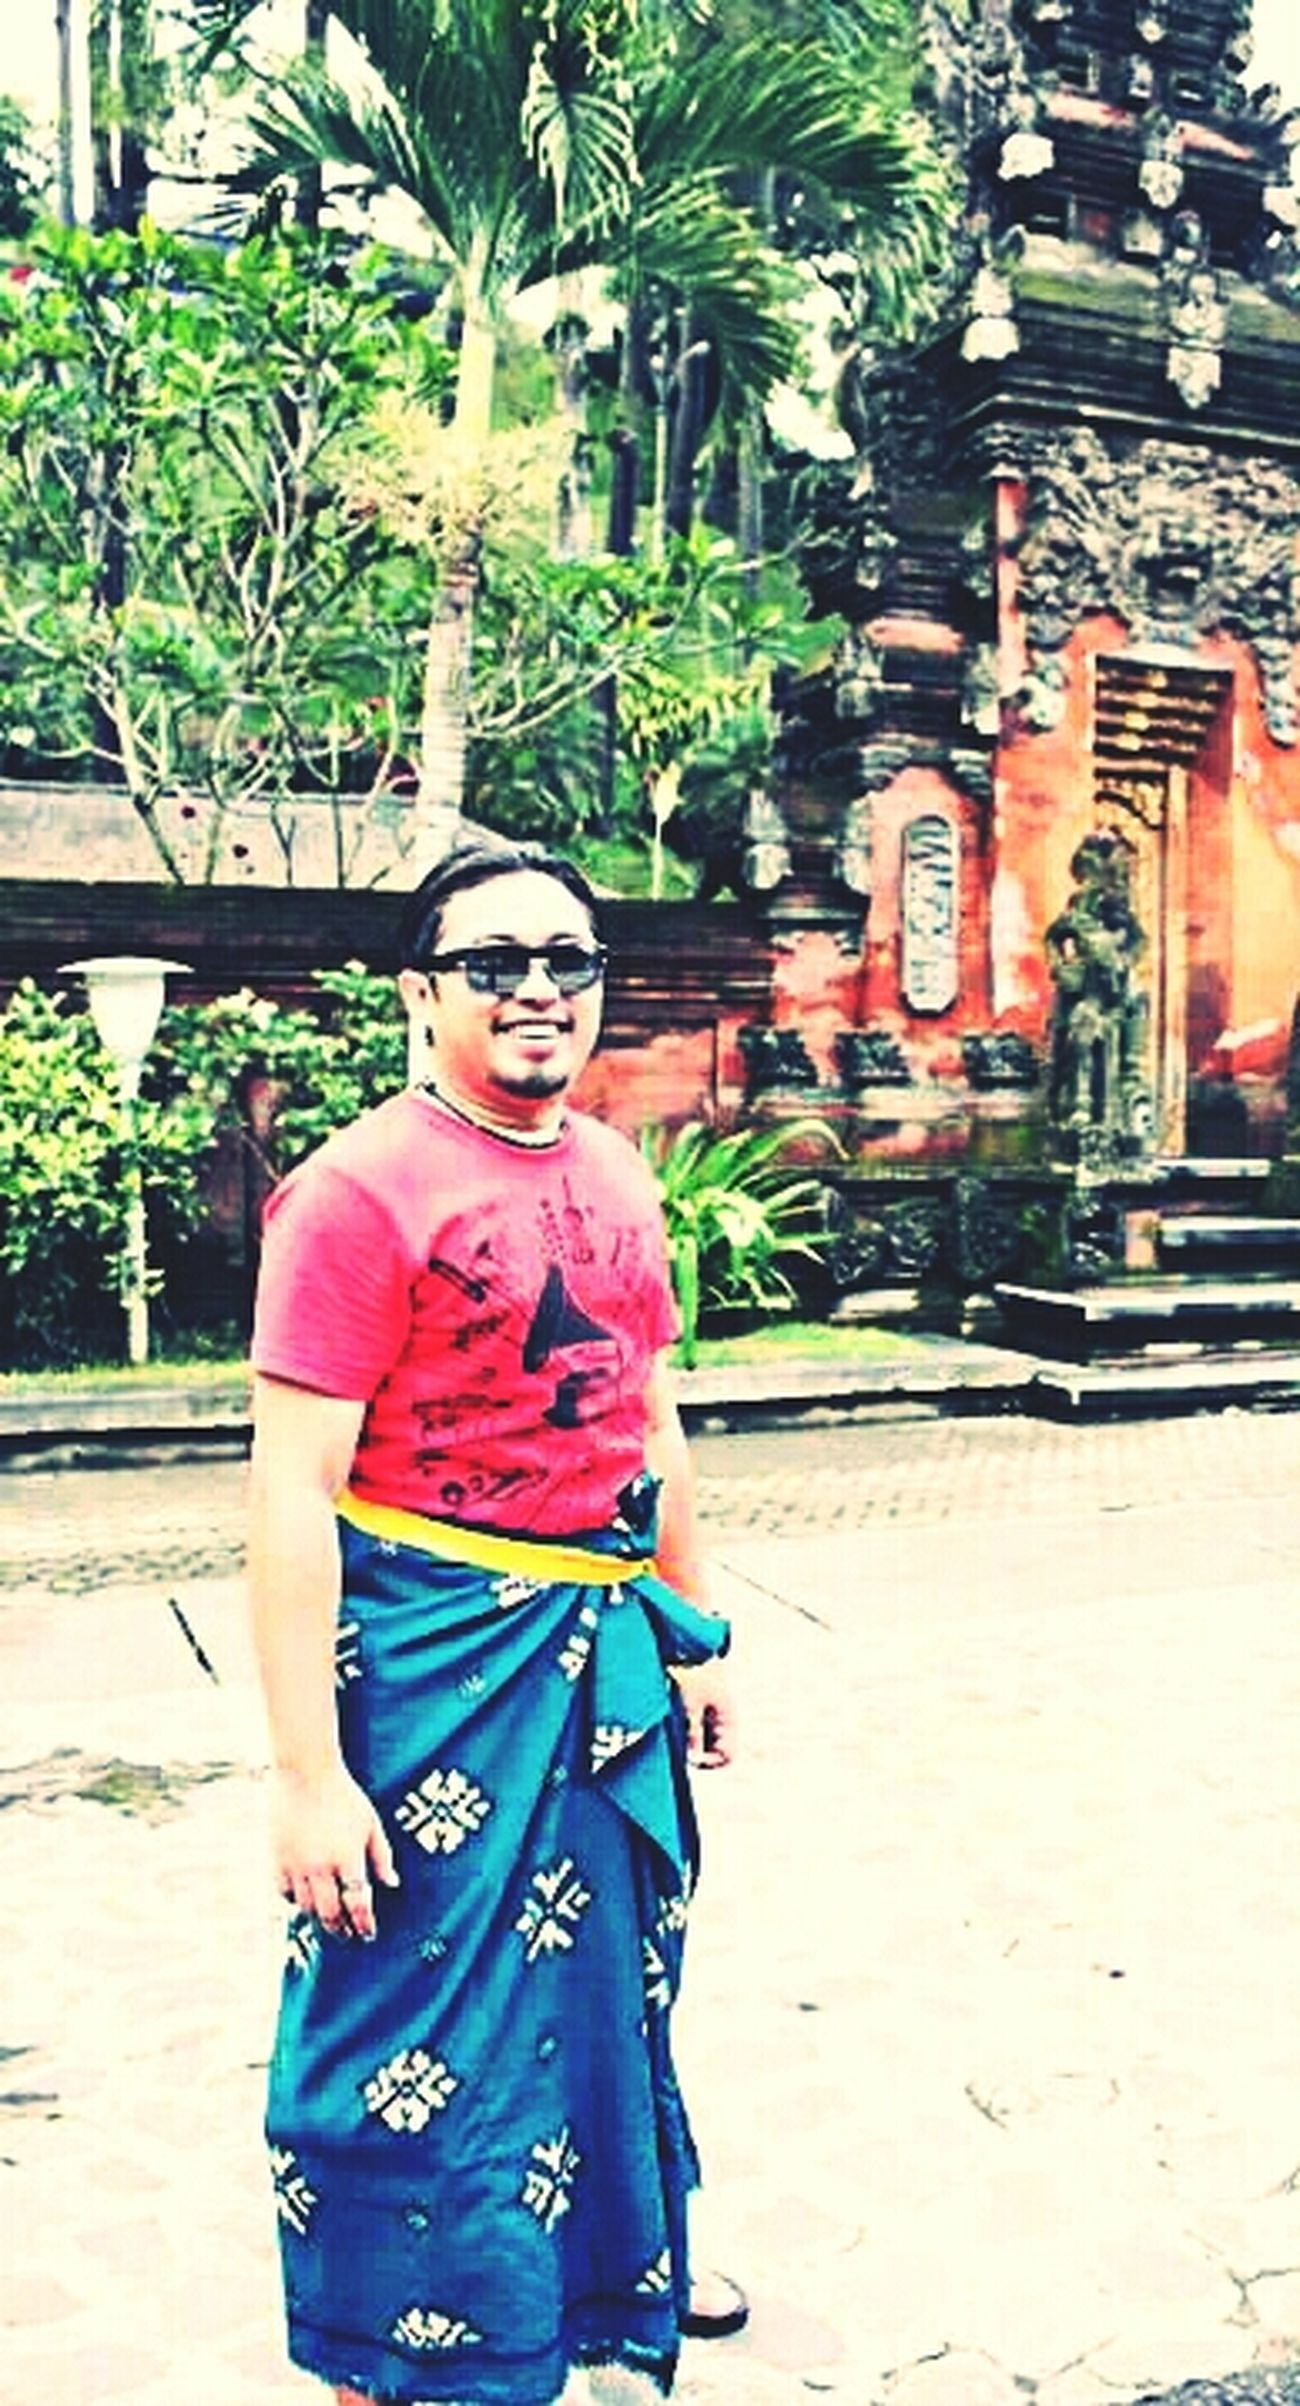 Bali with love..